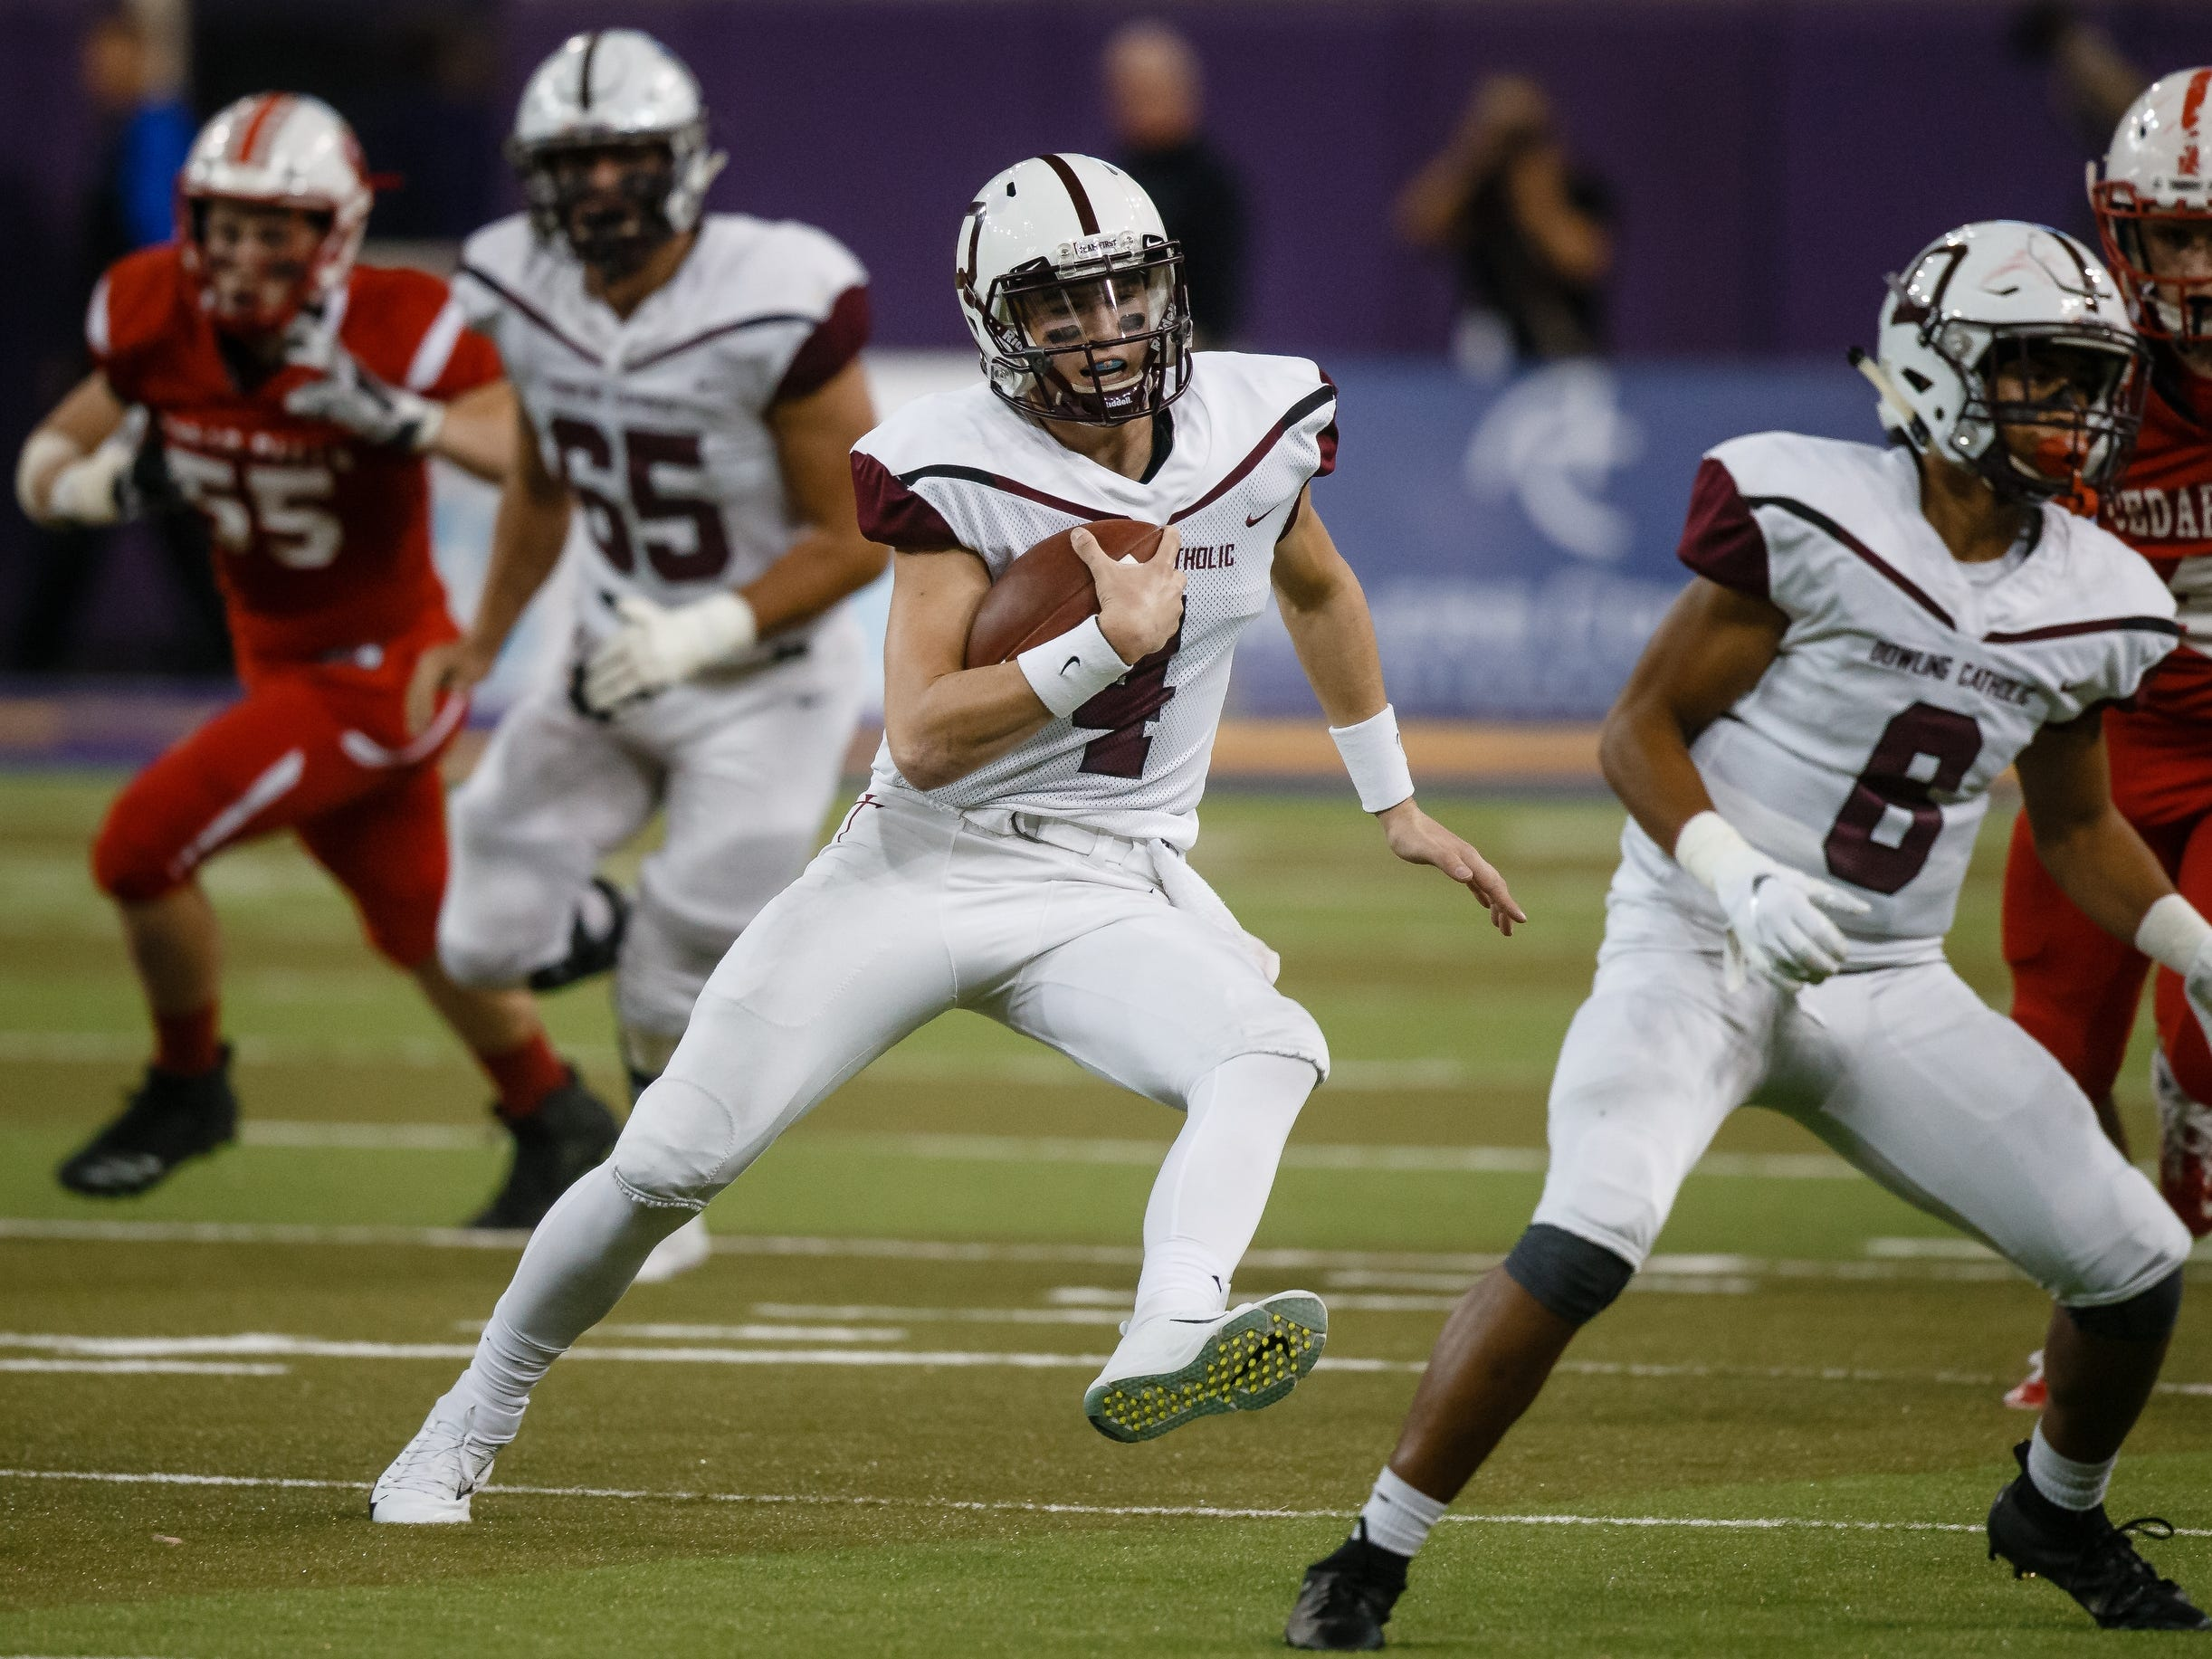 Dowling Catholic's Zach Watters (4) runs the ball during their class 4A state championship football game on Friday, Nov. 16, 2018, in Cedar Falls. Dowling Catholic would go on to defeat Cedar Falls 22-16 and win their sixth state title.